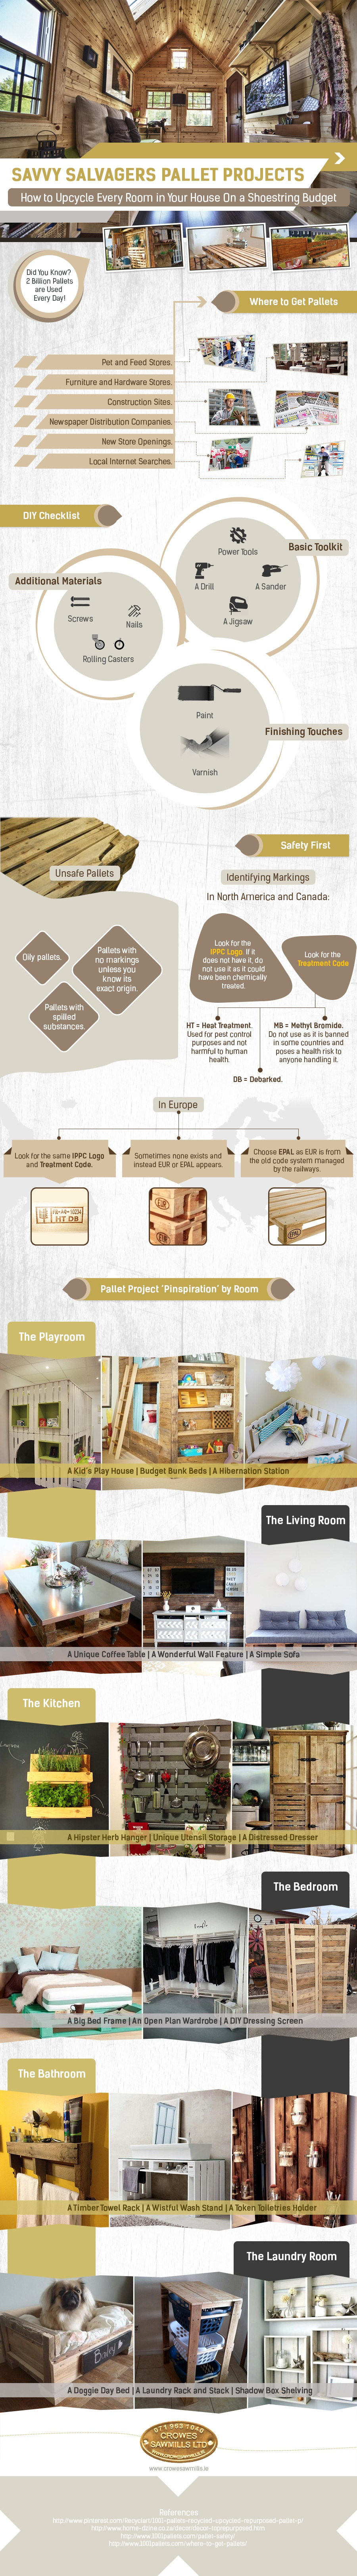 Do you love the look of pallet projects? There are endless possibilities for what you can create with a pallet. Pallet Projects Infographic via @tipsaholic #pallets #diy #projects #wood #home #pallet